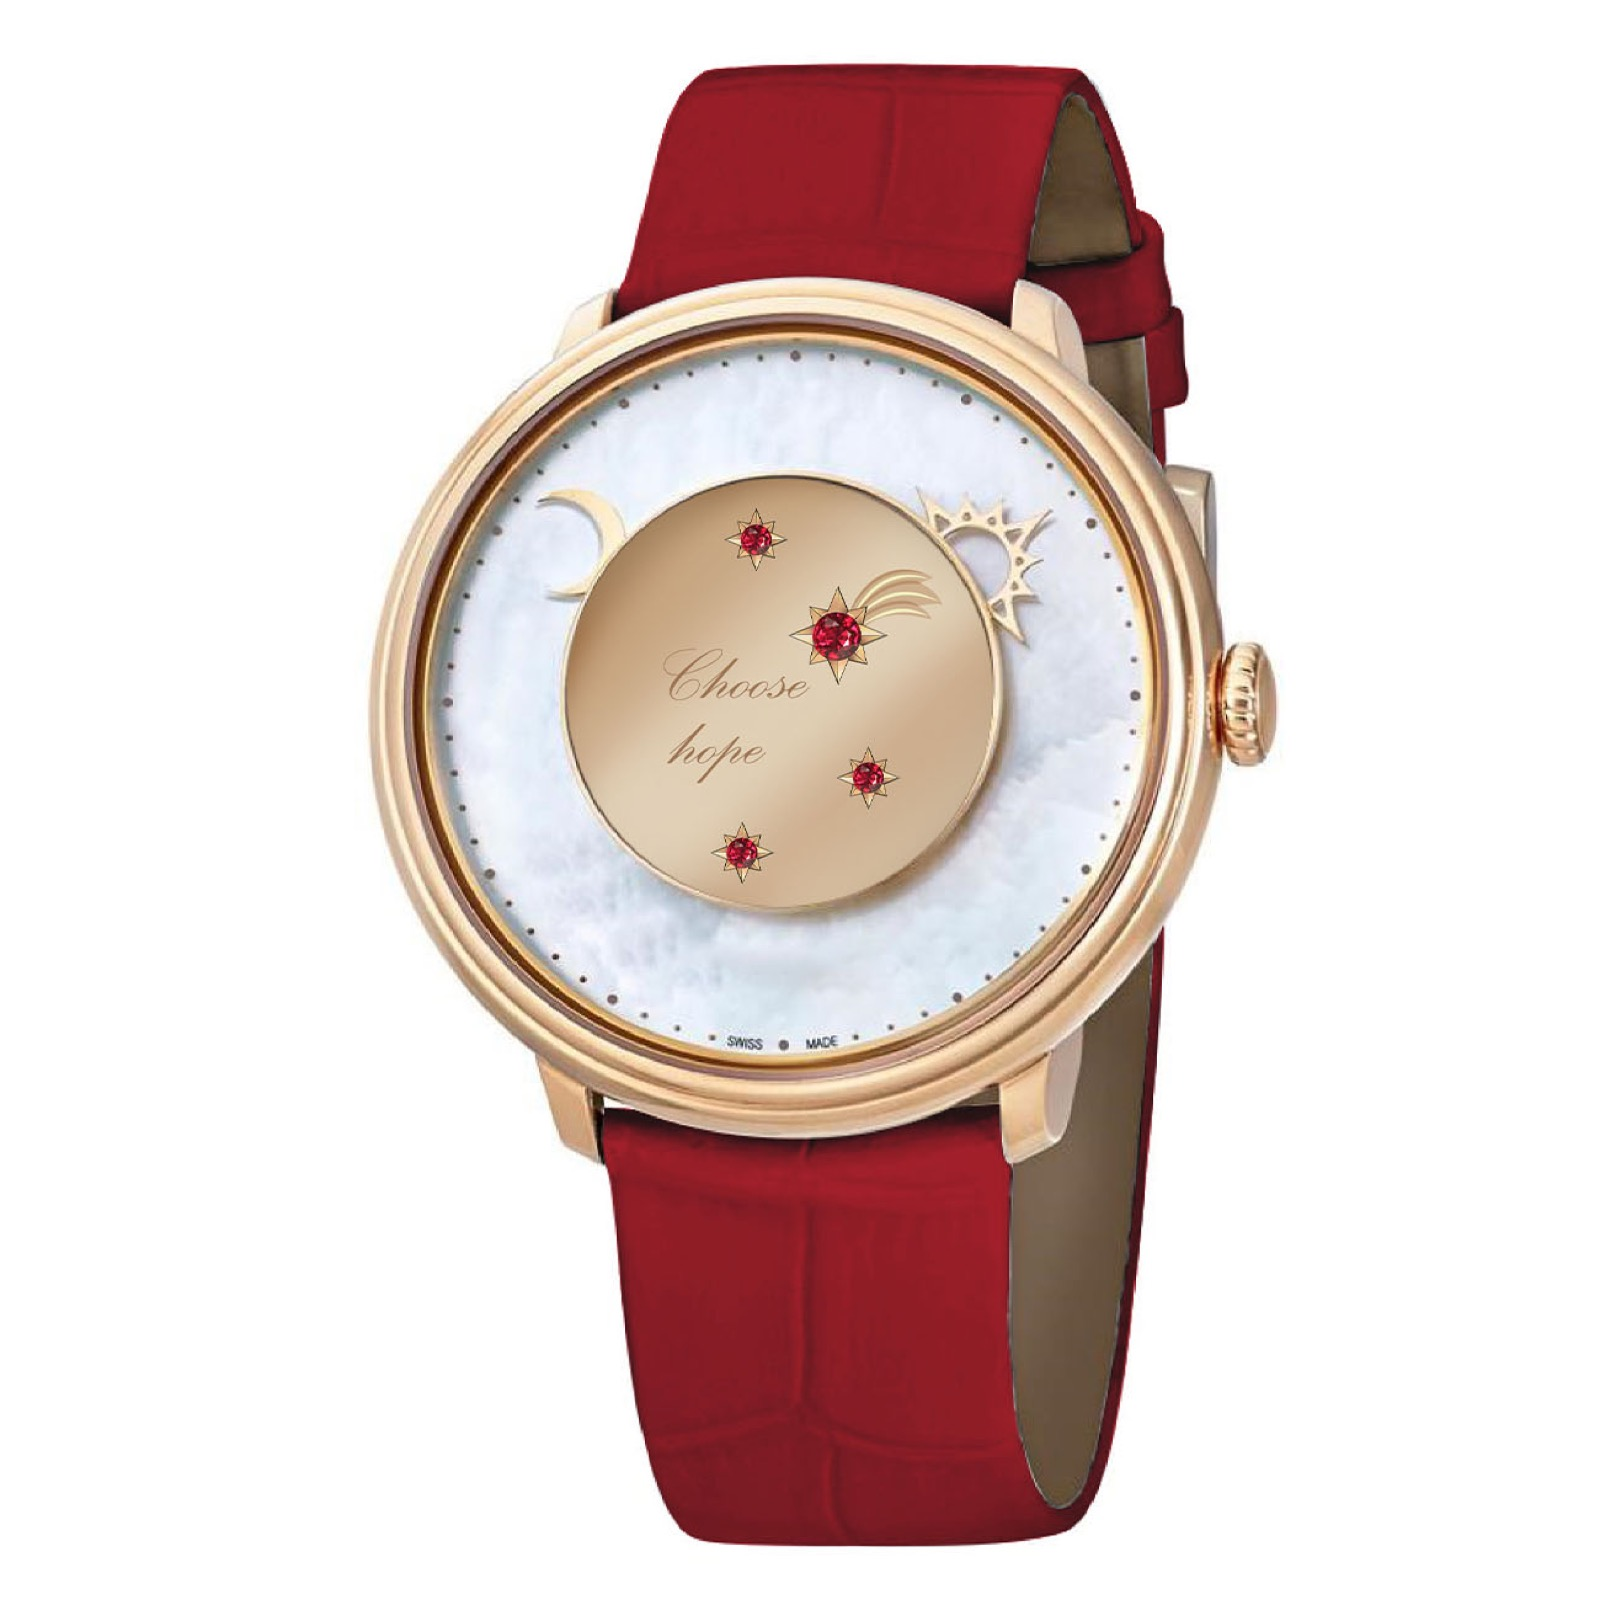 Faberge-only-watch-2021